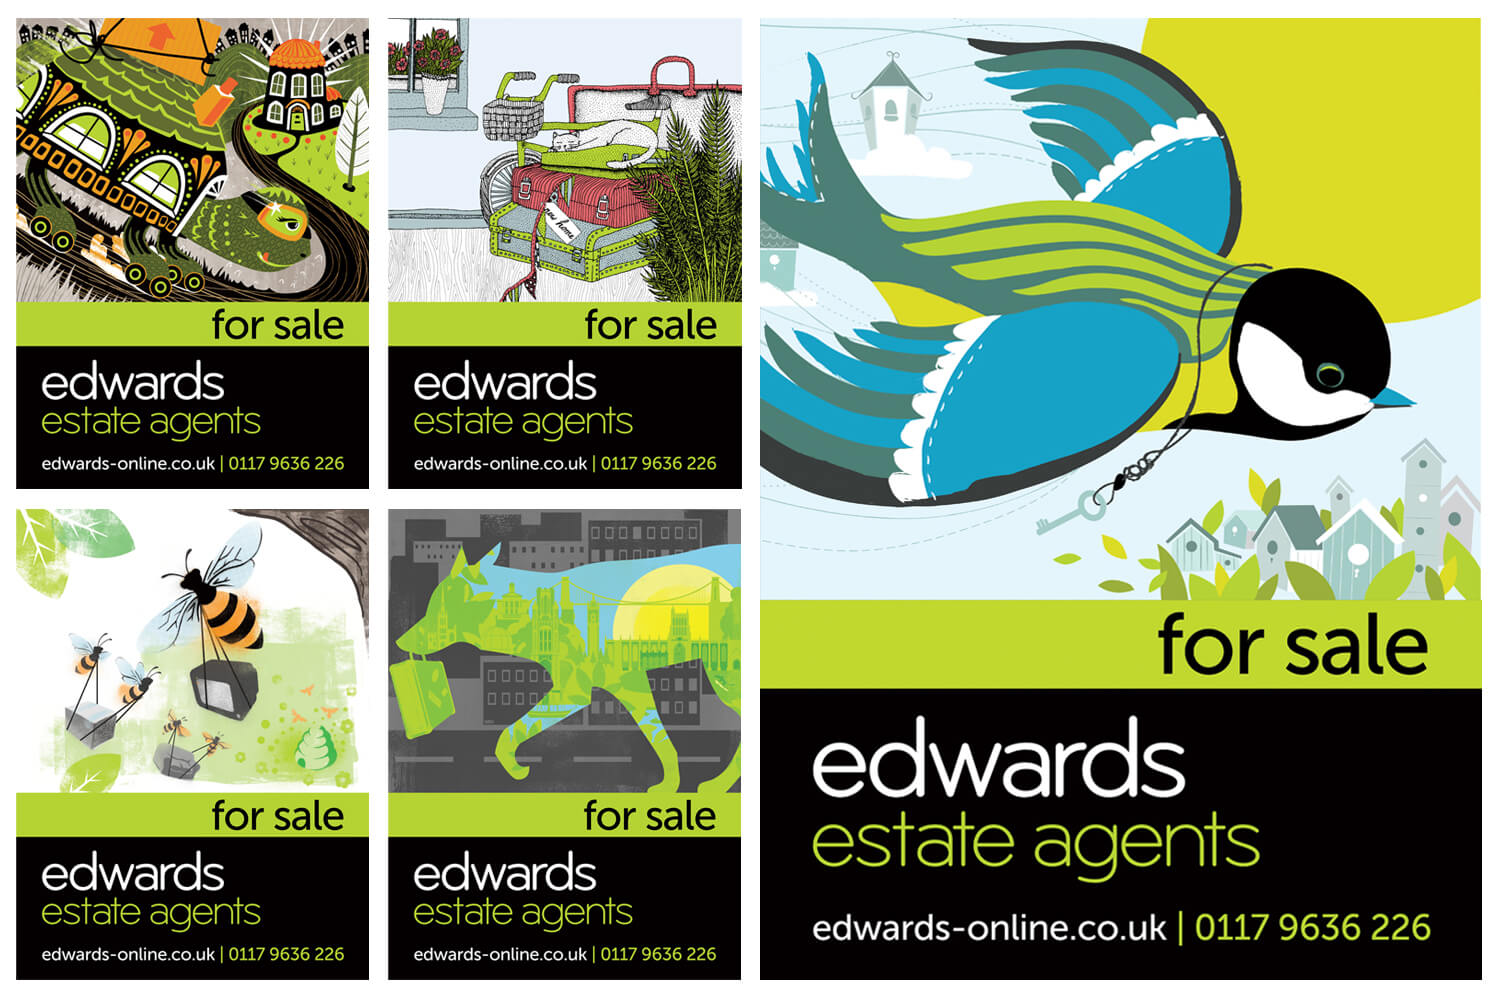 Set of Edwards sale boards. The 4 designs on the left were introduced initially, with the bird design added at a later date to mark the opening of a new branch. Illustrations by (clockwise from top left): Carys-ink,  Holly Maguire , Carys-ink,  Slumber  and  Michelle Barker